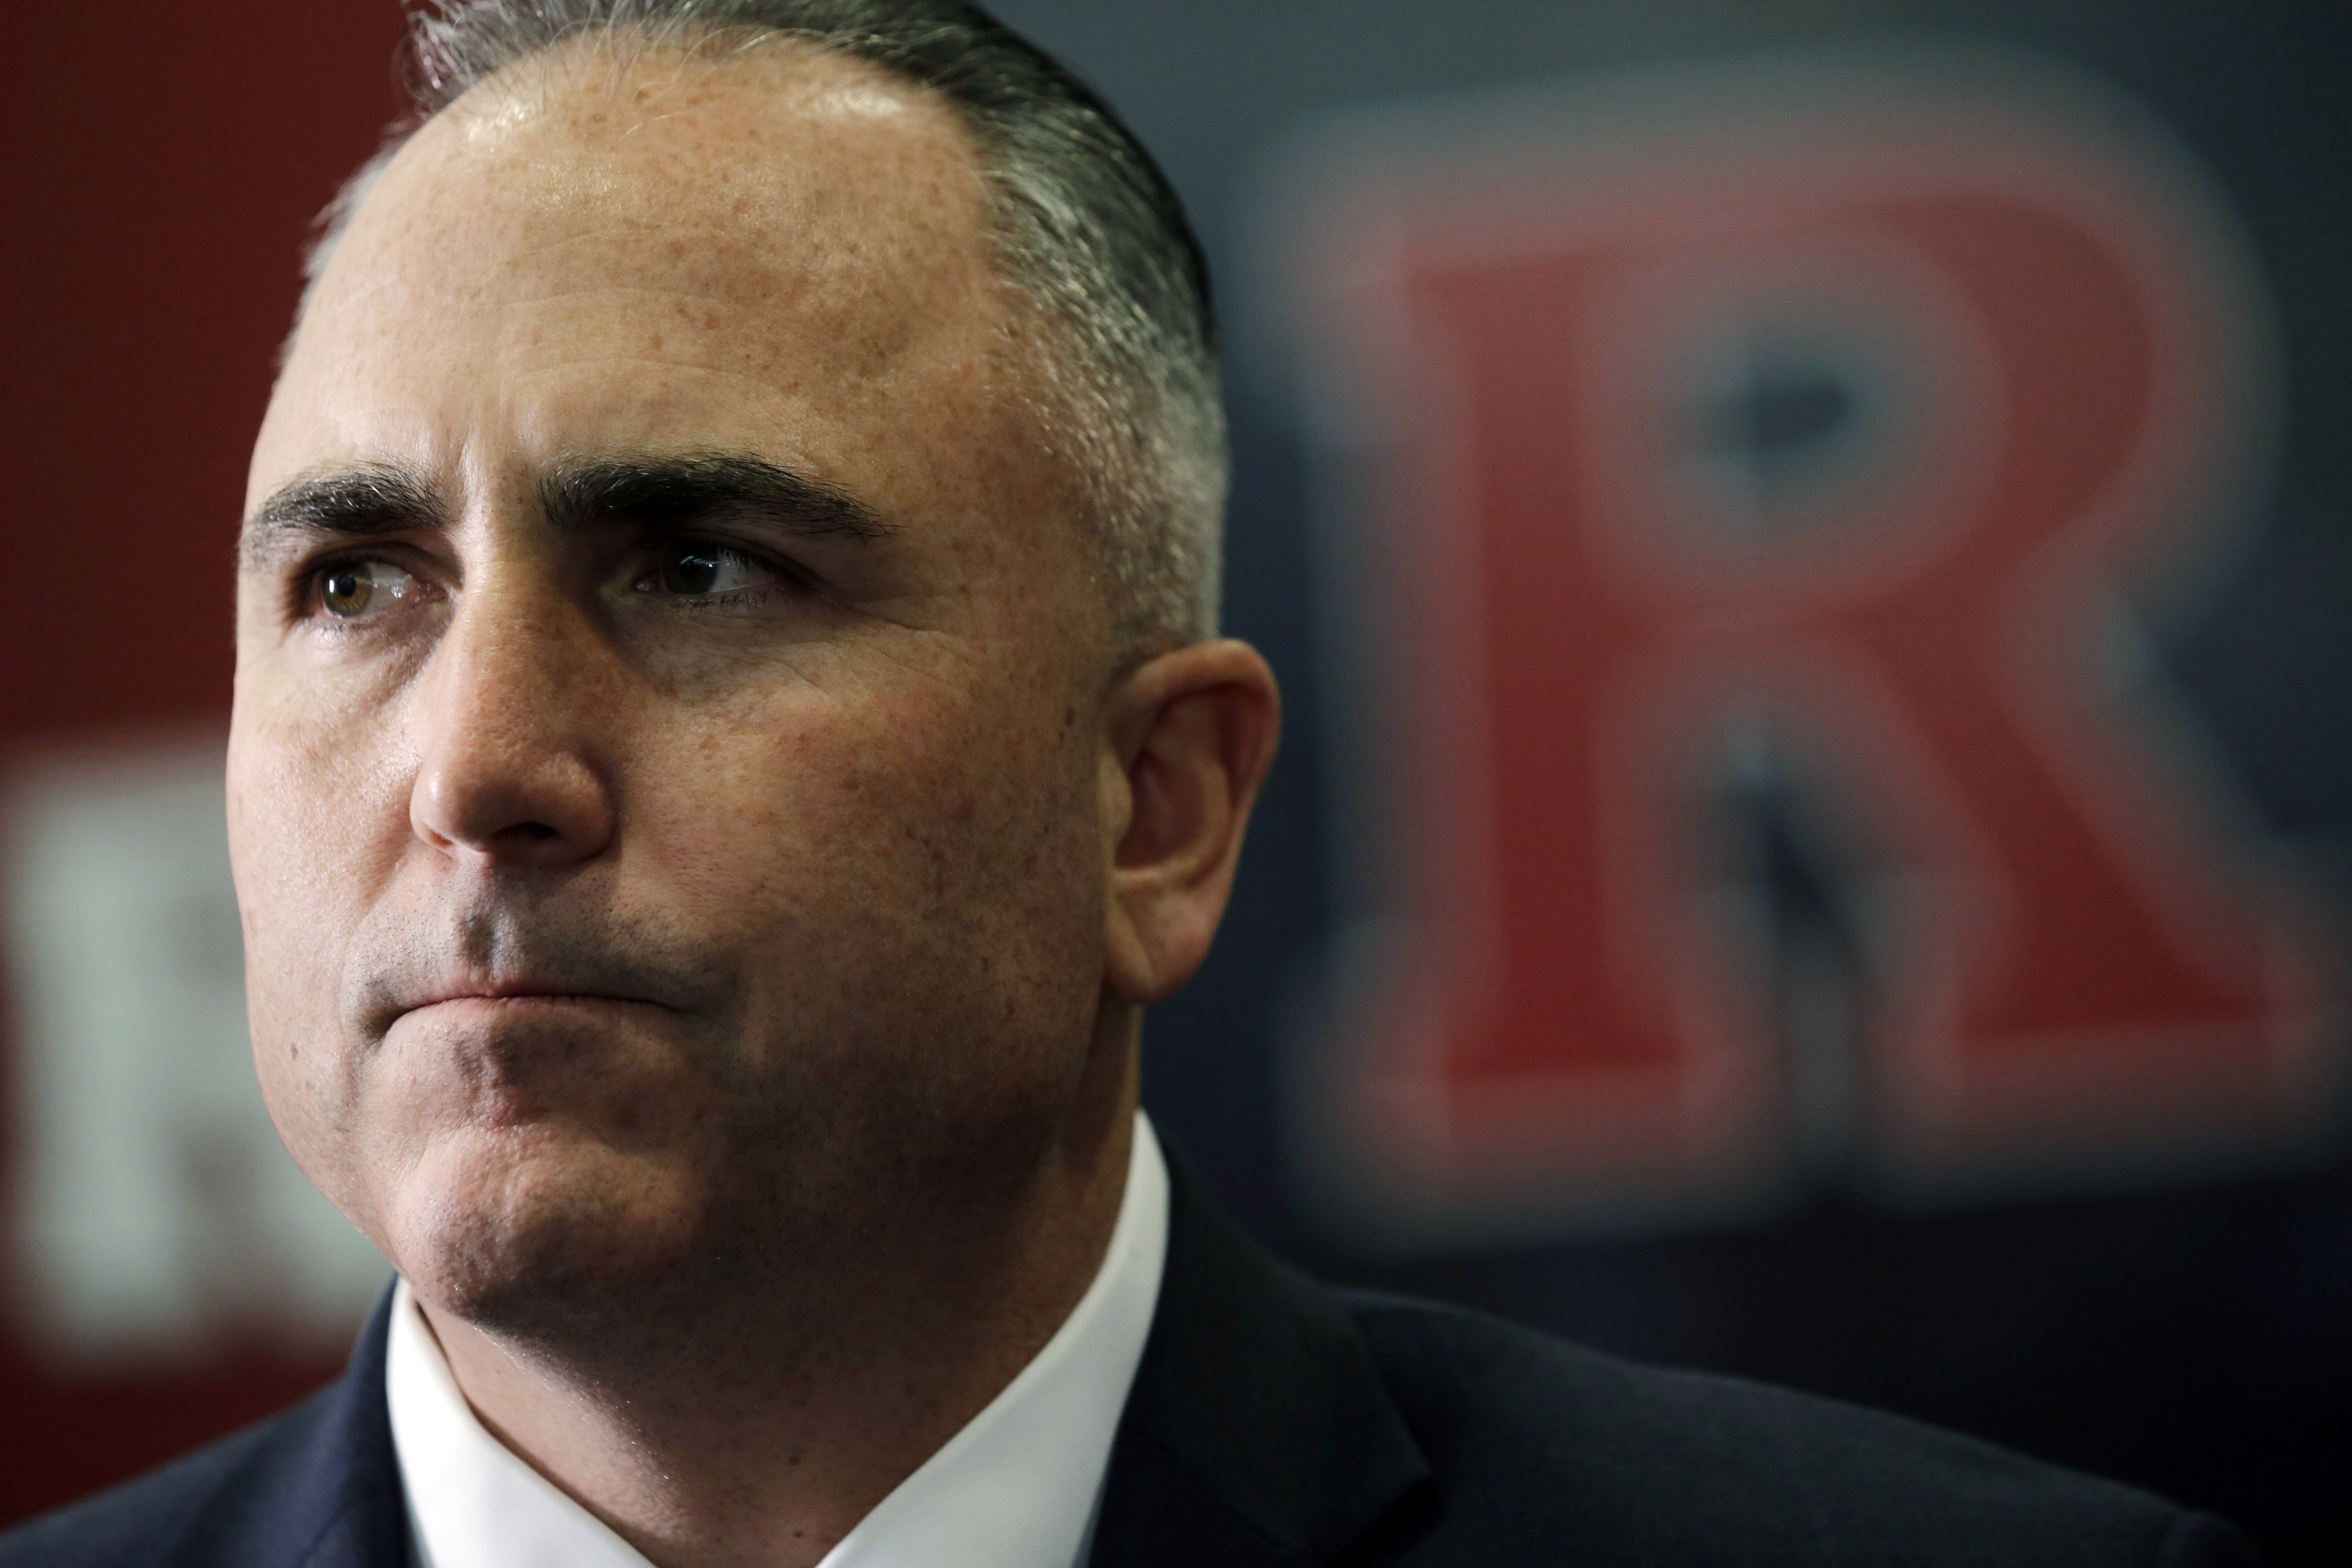 FILE - This is a Feb. 4, 2015, file photo showing Rutgers football head coach Kyle Flood listening to a question about the Scarlet Knights' recruiting class on national signing day in Piscataway, N.J. Rutgers is investigating whether football coach Kyle F